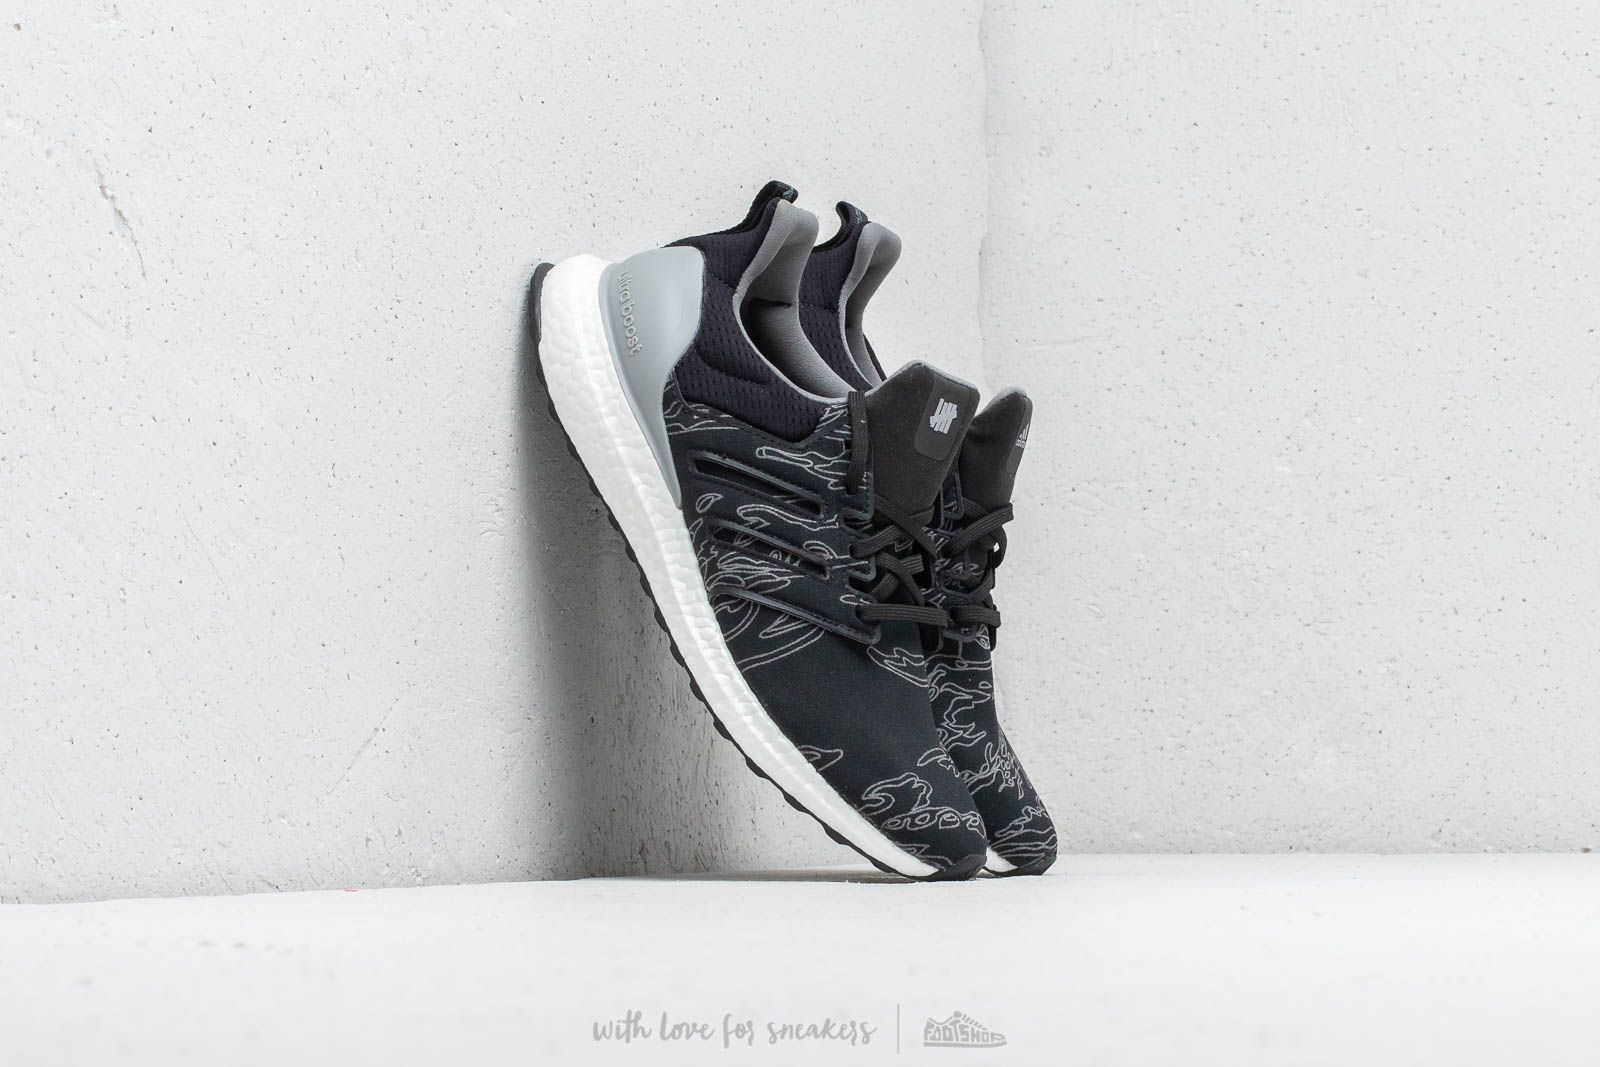 cad76387f adidas x Undefeated UltraBOOST Core Black  Core Black  Core Black at a  great price